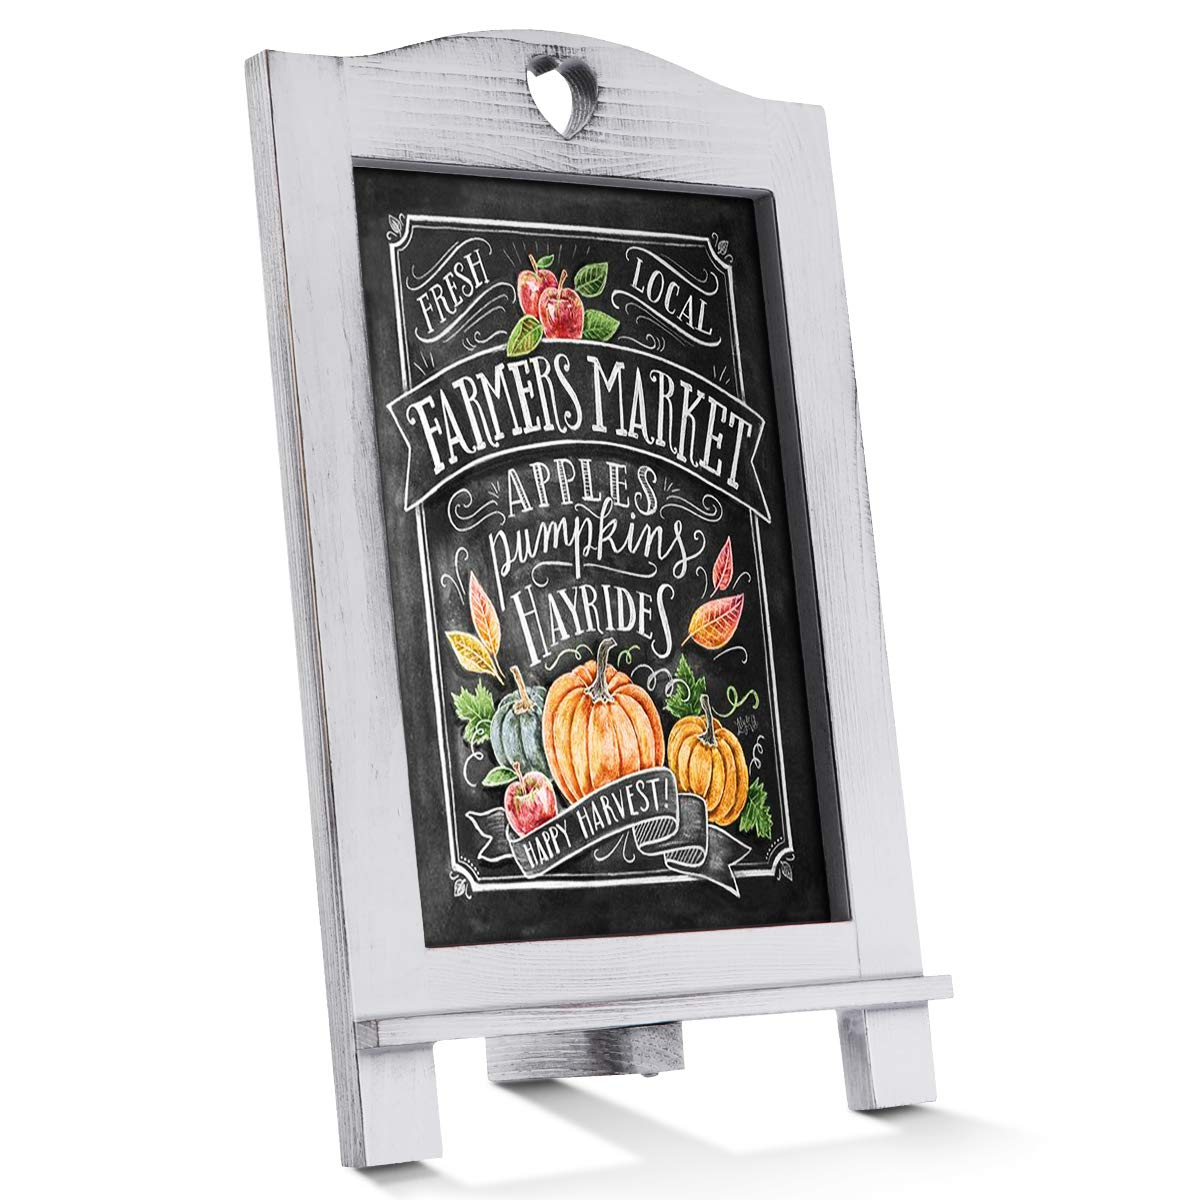 Homemaxs Chalkboard Signs Rustic Magnetic Tabletop Chalk Board 15.7 X 10 with Frame and Hanging String, Easel Countertop Memo Decor Board for Wedding, Kitchen by Homemaxs